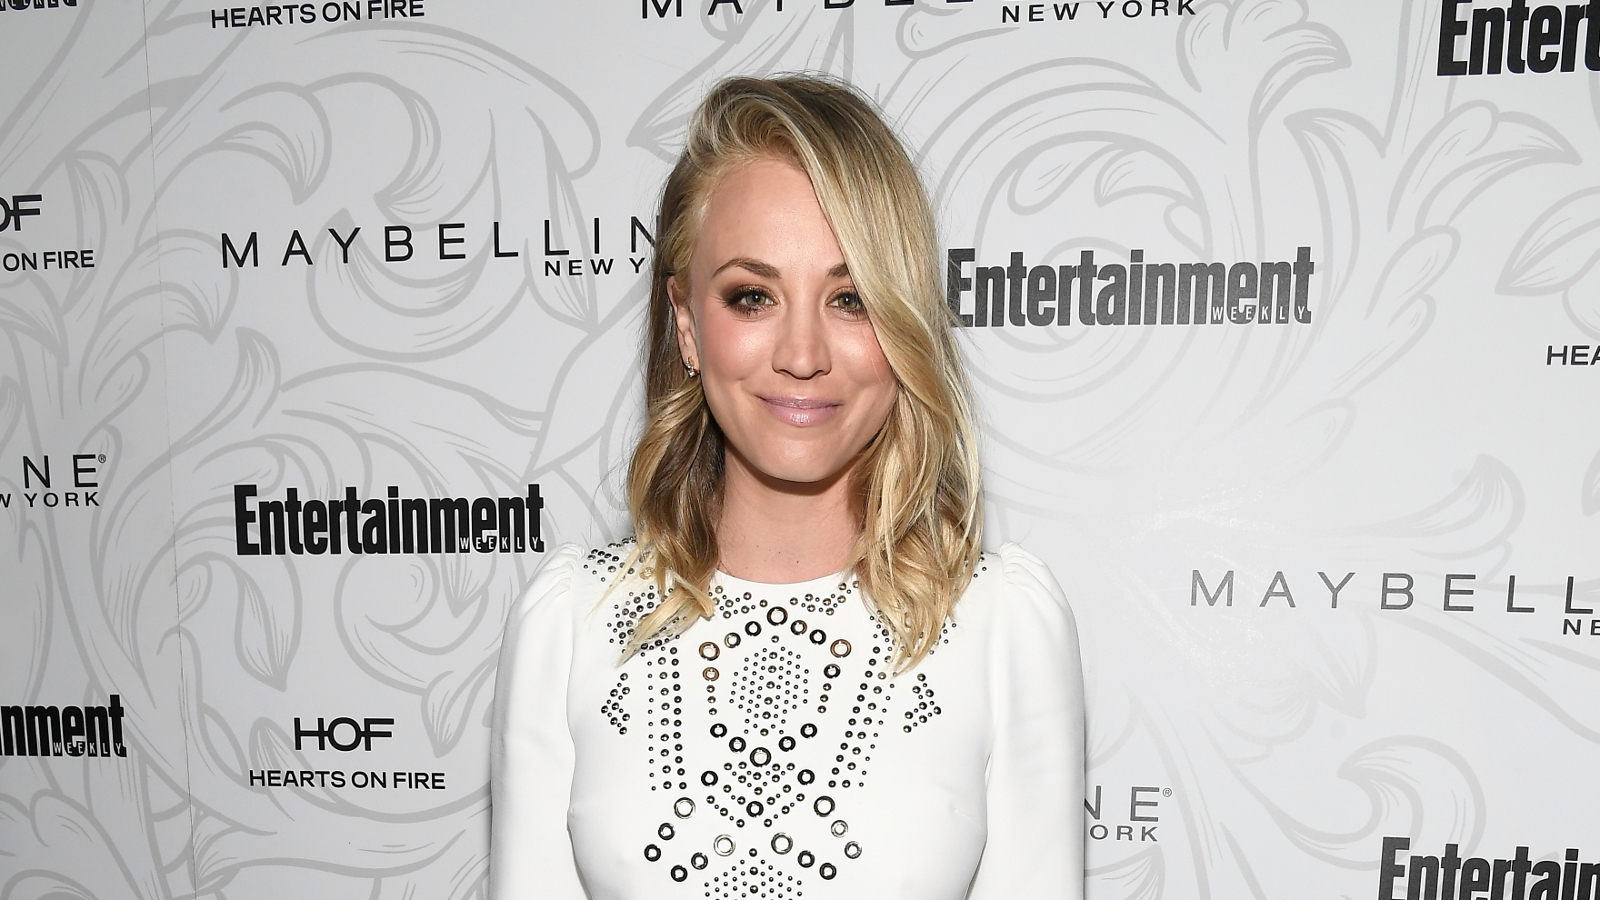 Cuoco Needed Stitches After On Set Prank Went Wrong